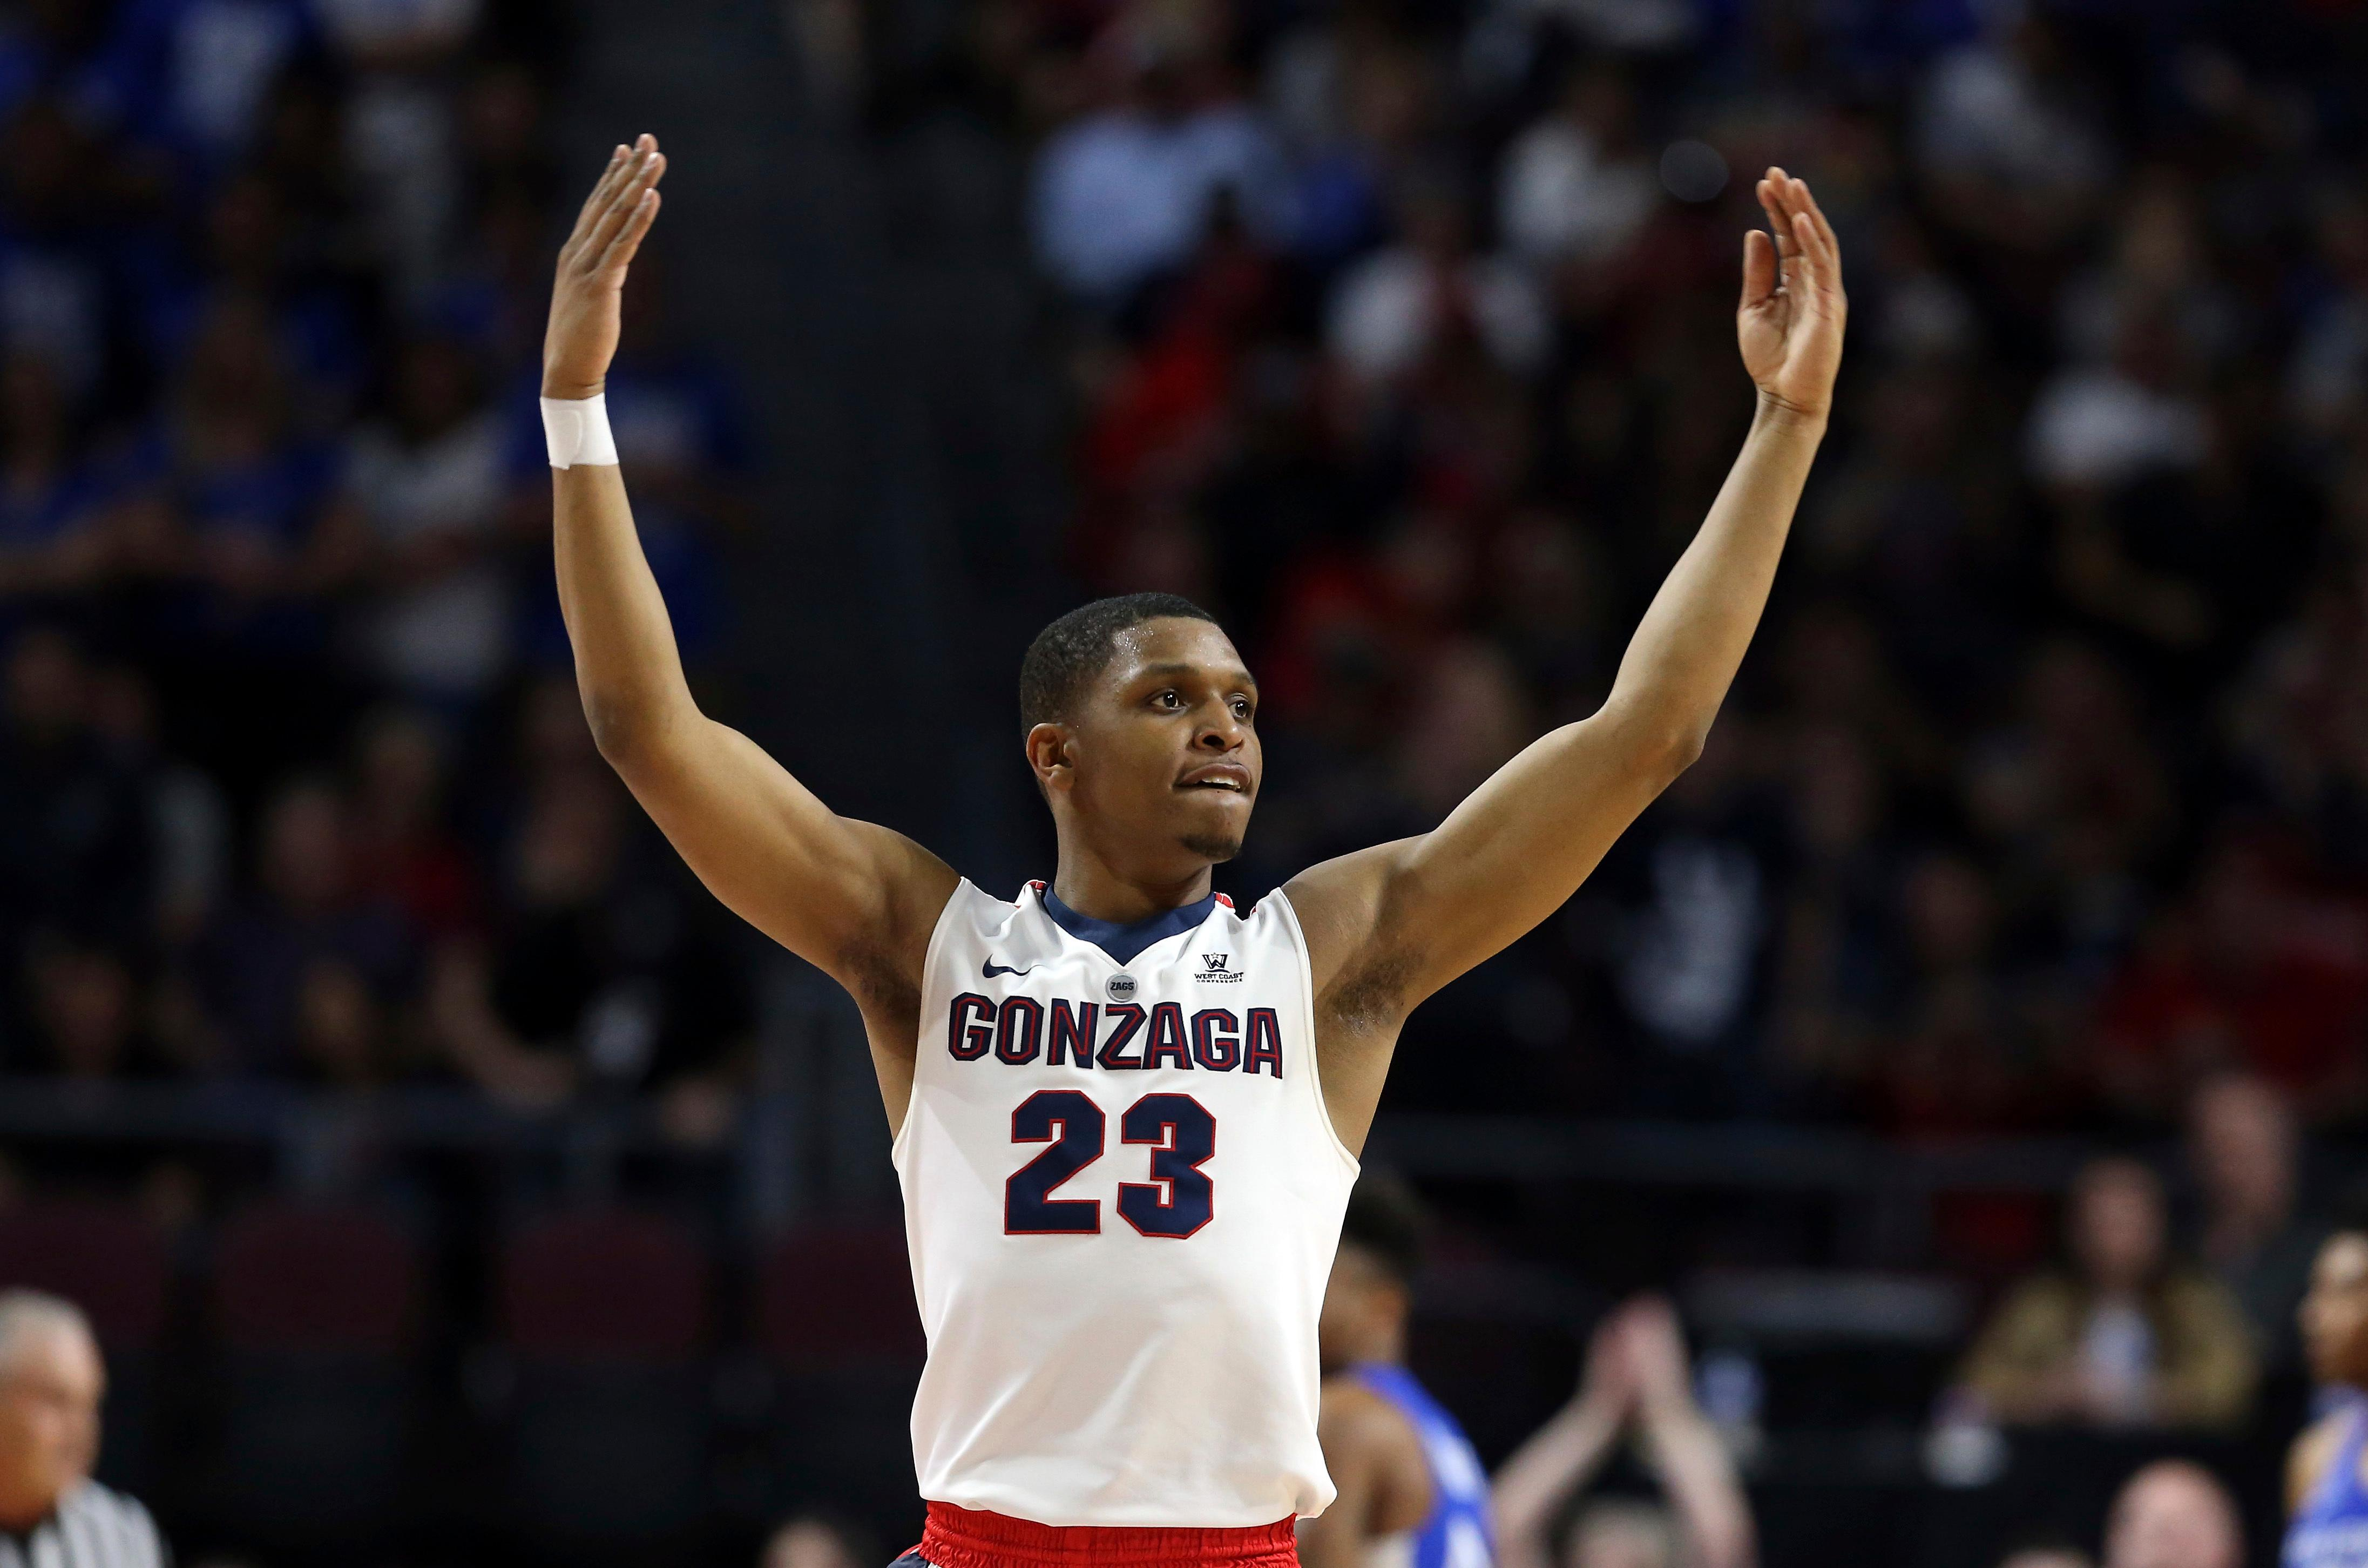 Gonzaga's Zach Norvell Jr. raises his hands to the crowd during the first half of the West Coast Conference tournament championship NCAA college basketball game against BYU Tuesday, March 6, 2018, in Las Vegas. (AP Photo/Isaac Brekken)